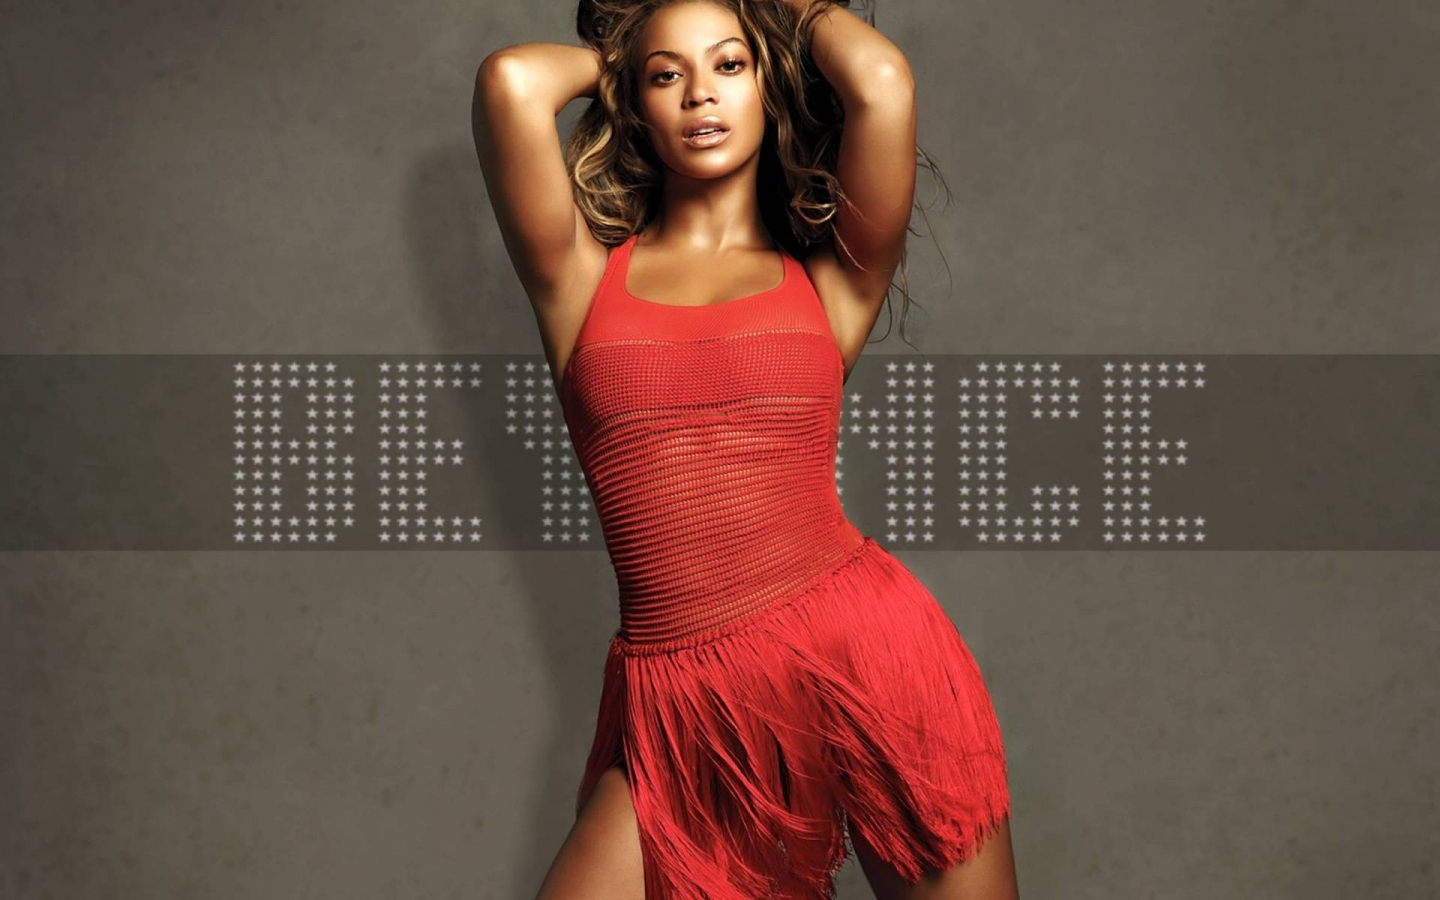 Beautiful Beyonce for 1440 x 900 widescreen resolution